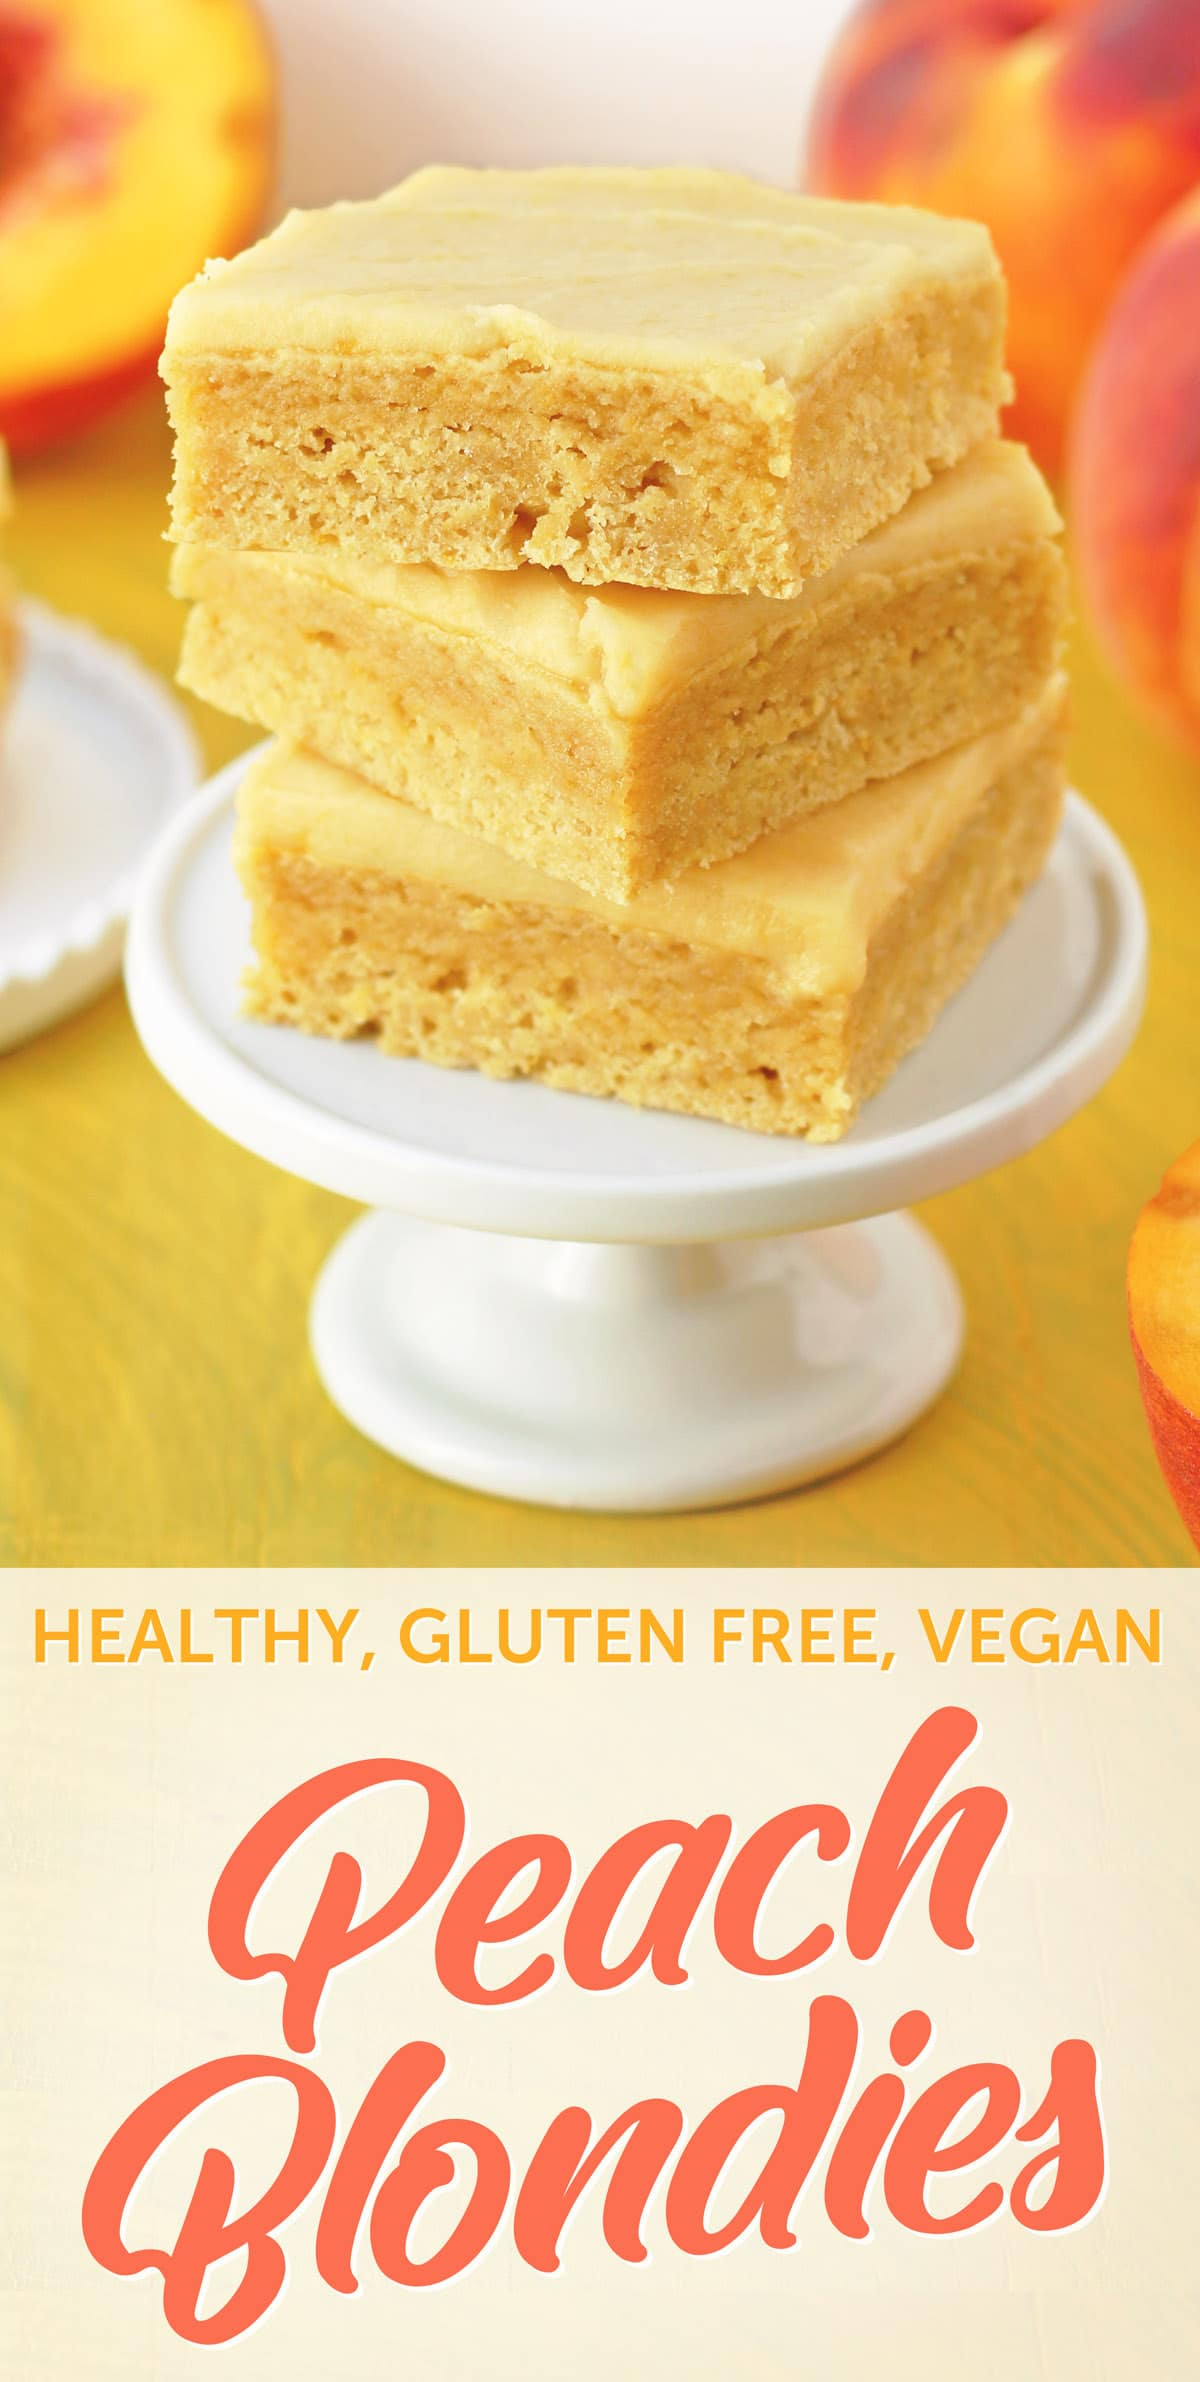 Gluten Free Vegan Lemon Peach Blondies